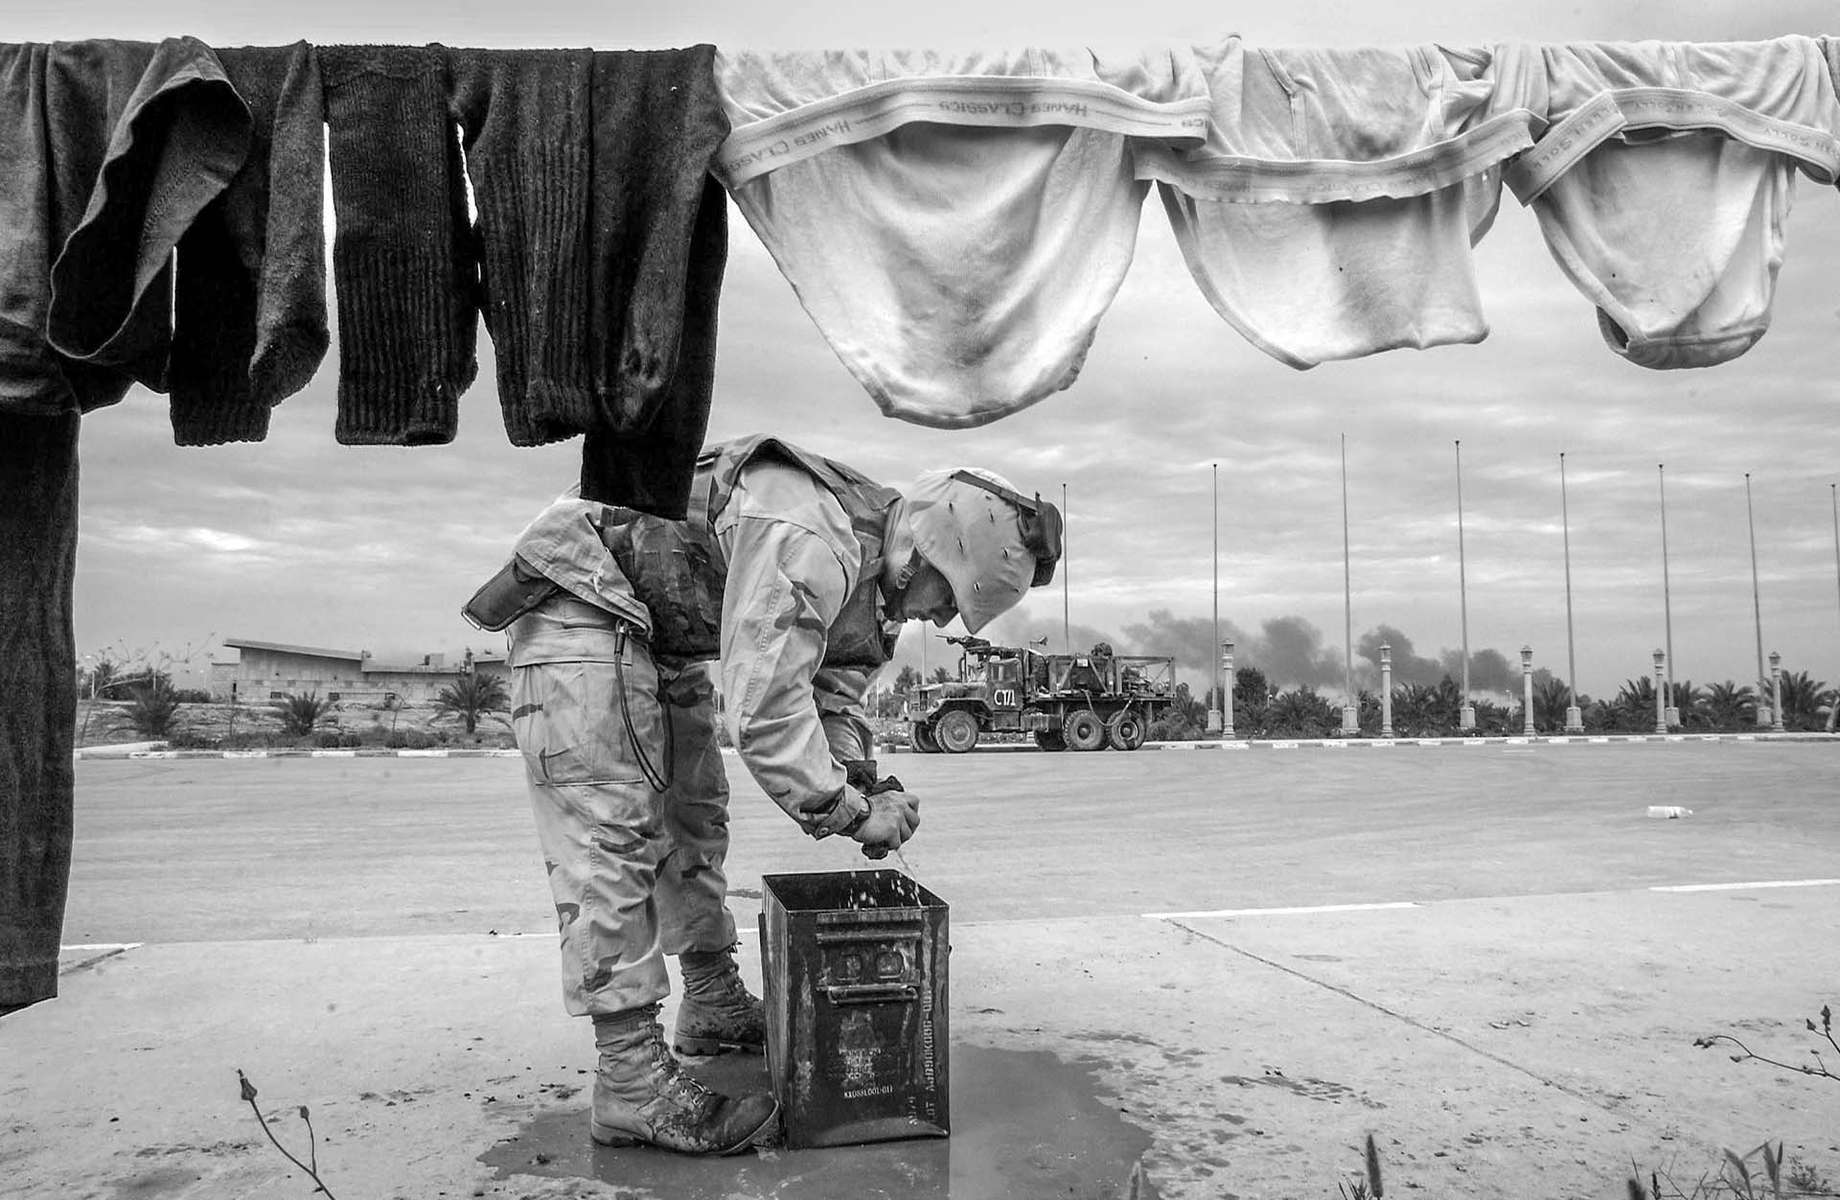 Brian Clark of the 1st Light Armored Division does his chore at Saddam Hussain's palece in the city of Tikrit.